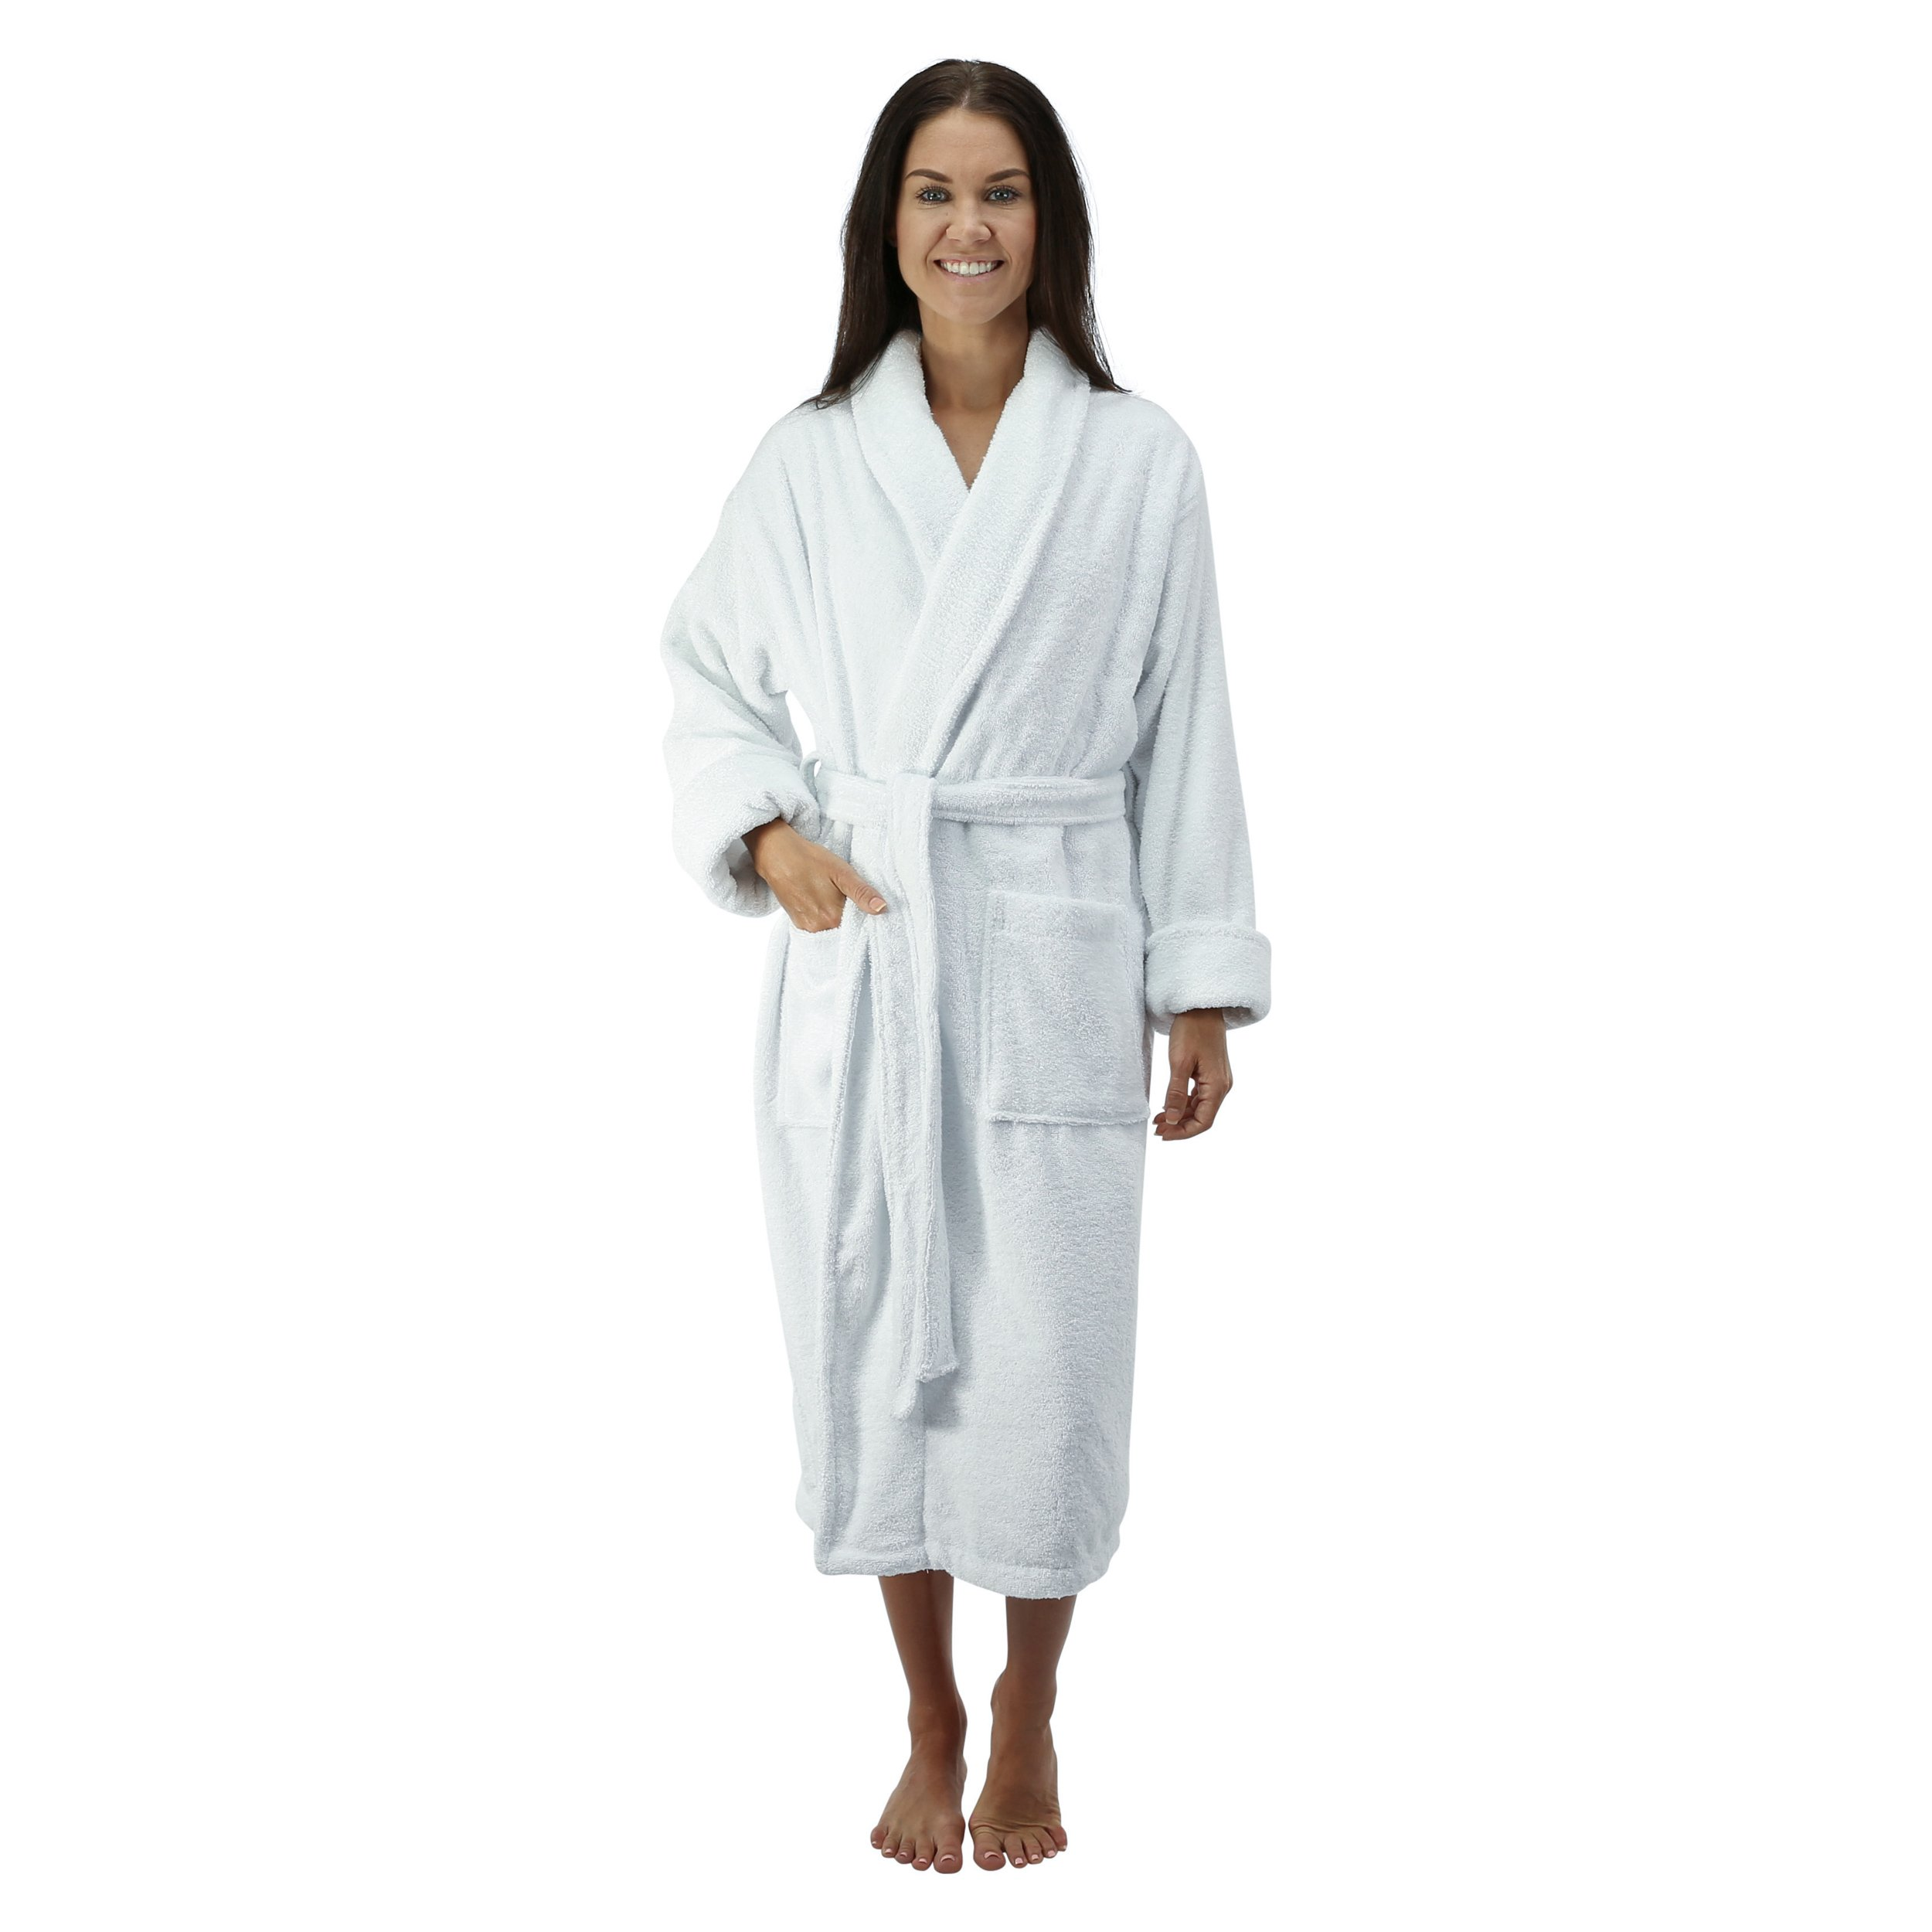 Comfy Robes Personalized Women's 16 Oz. Turkish Terry Cotton Bathrobe, XXL White